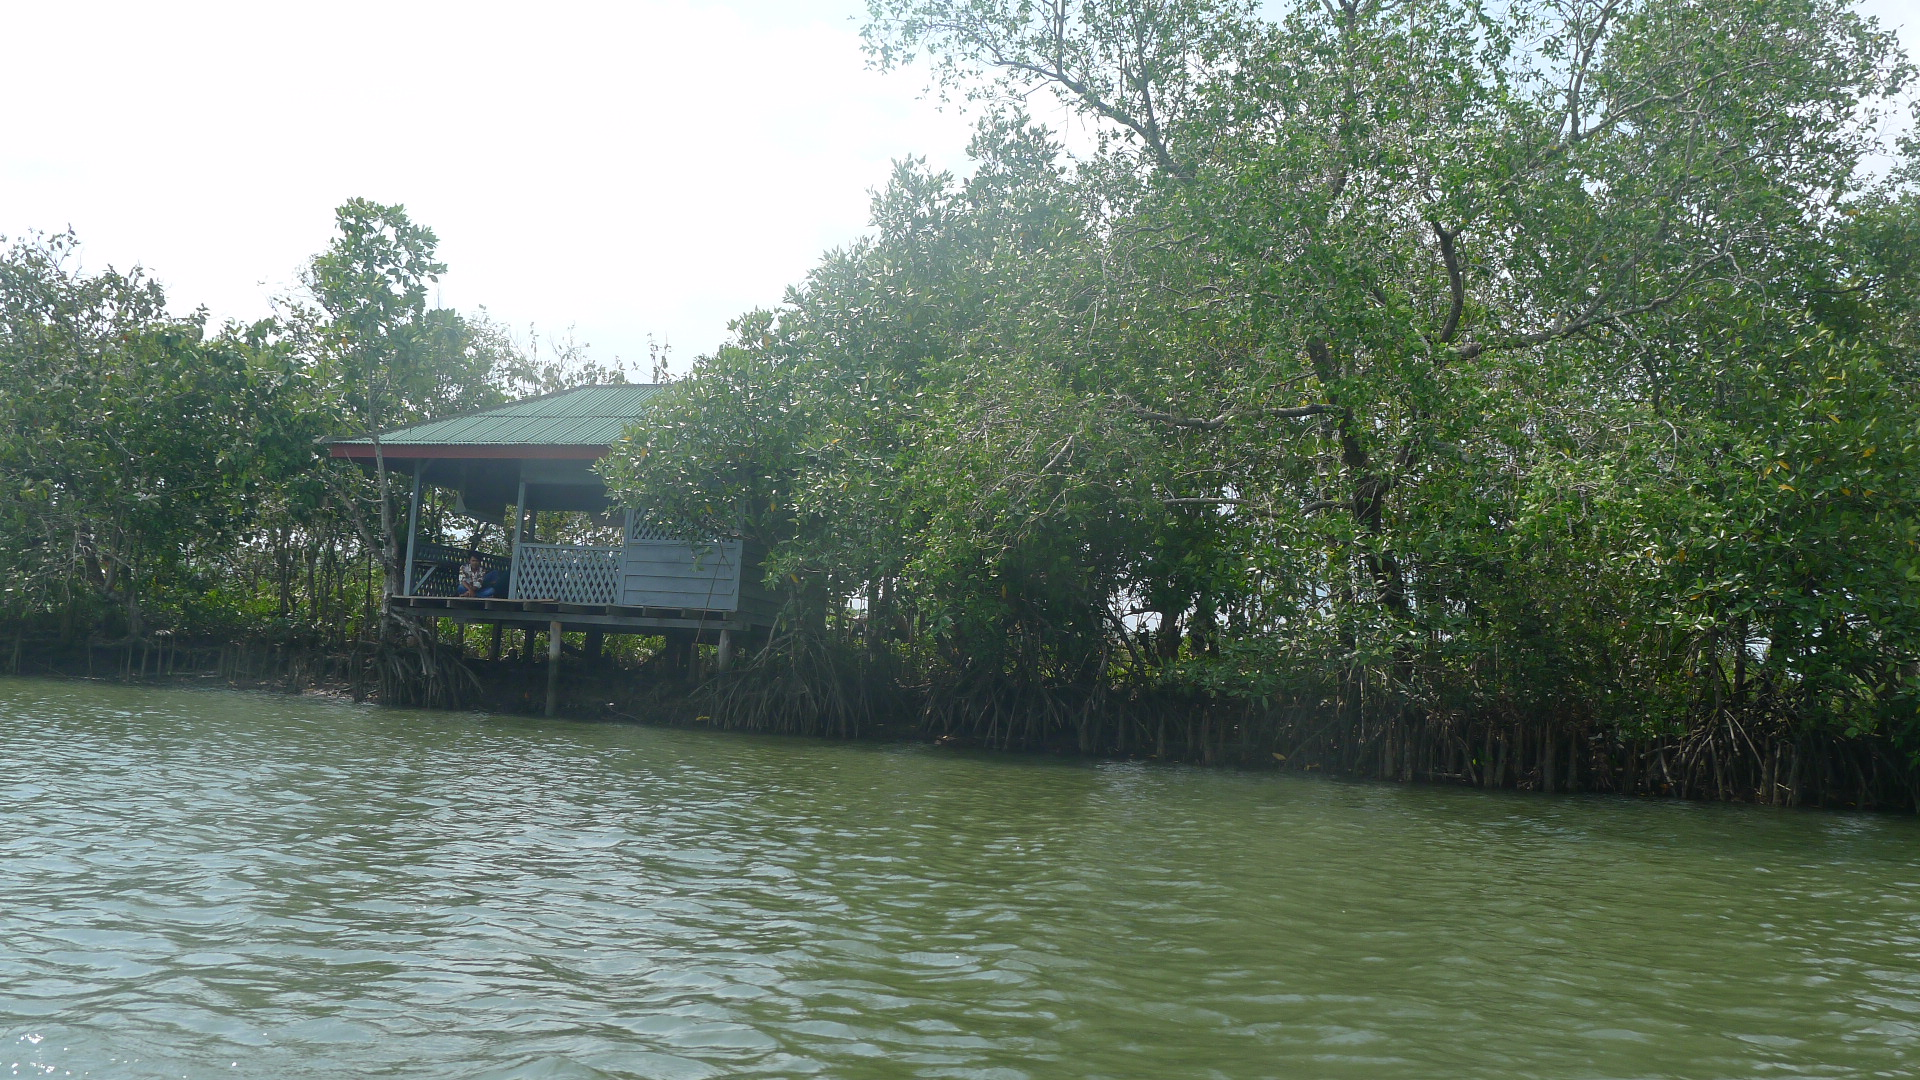 A house on the river bank with mangroves on either side